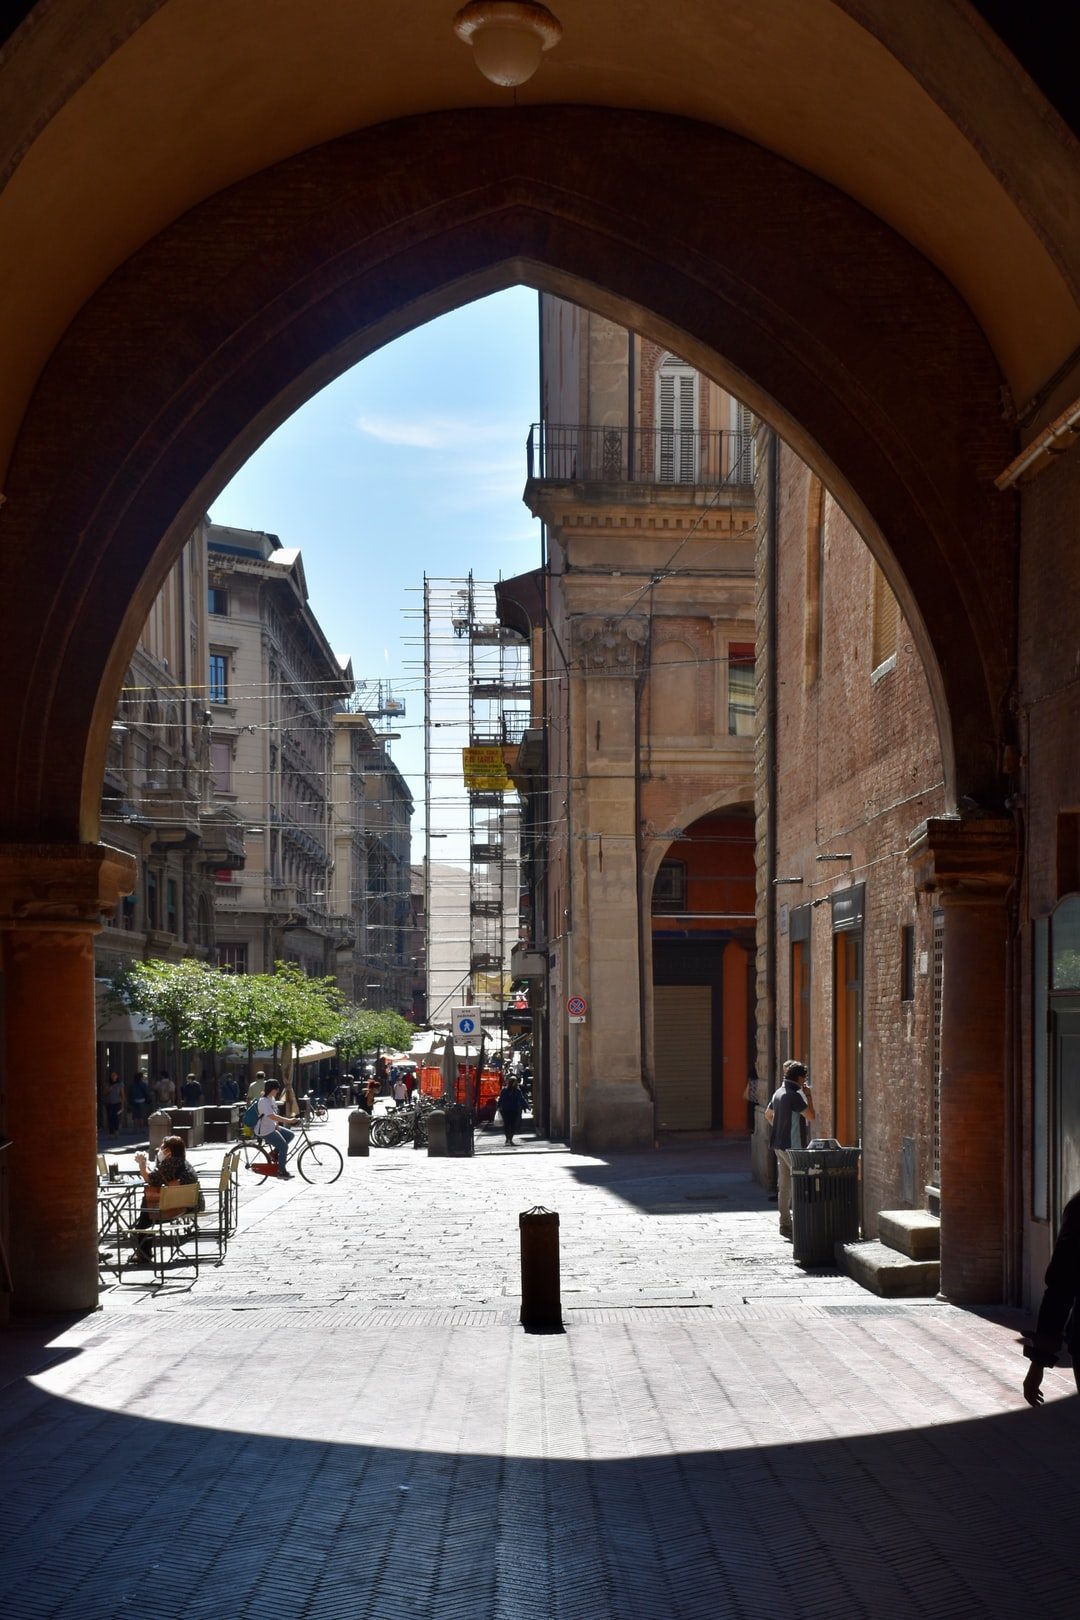 A large gate in King Enzos Palace in Bologna.